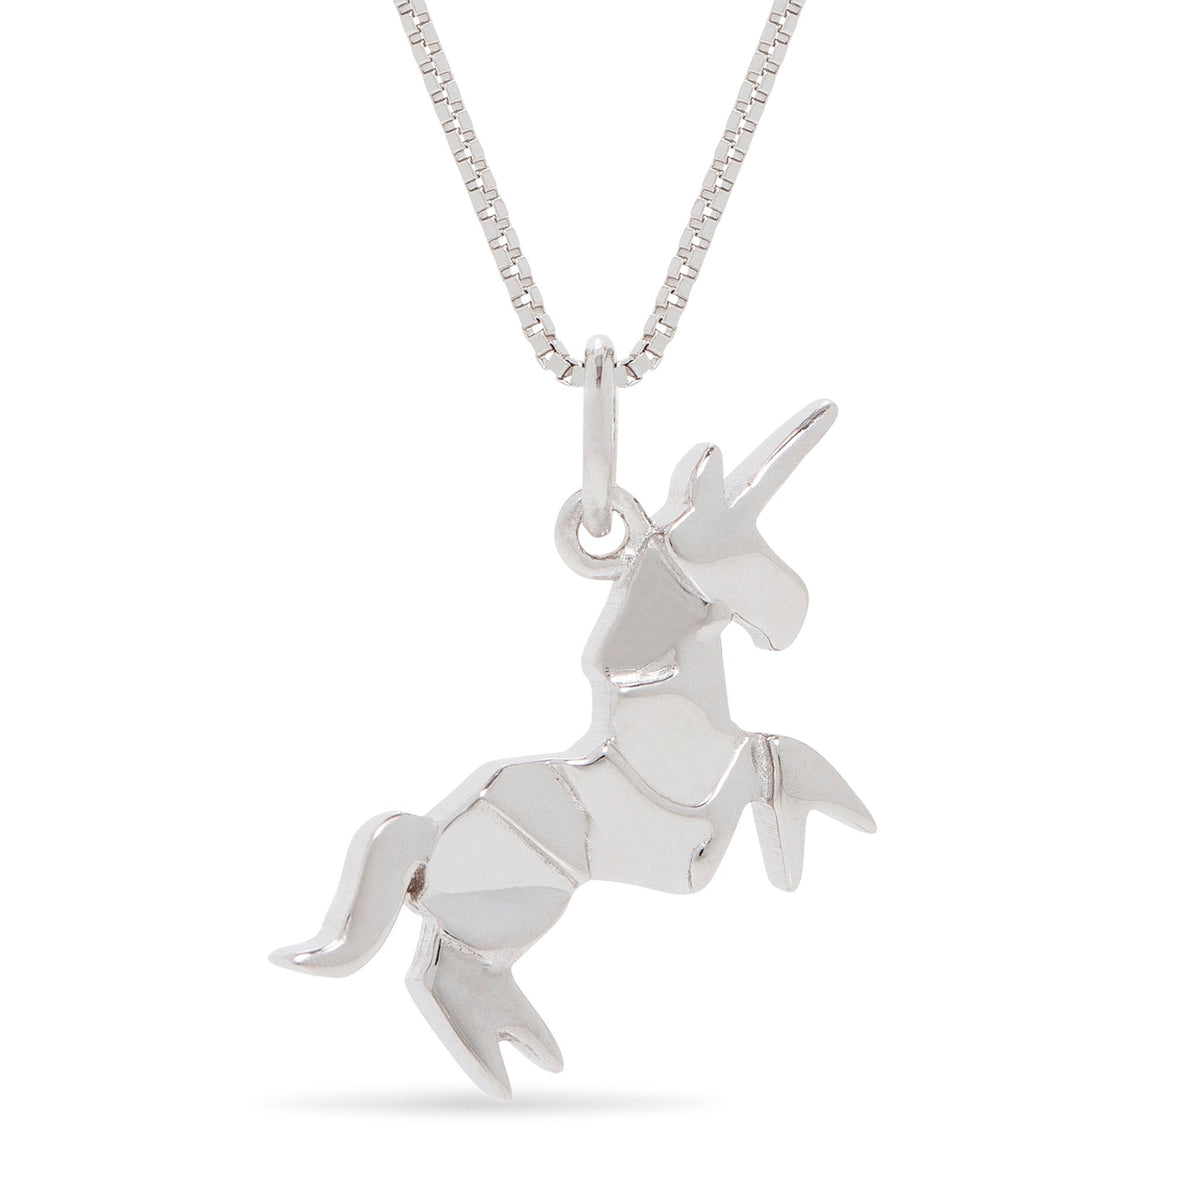 Necklace - Origami Style Unicorn Necklace